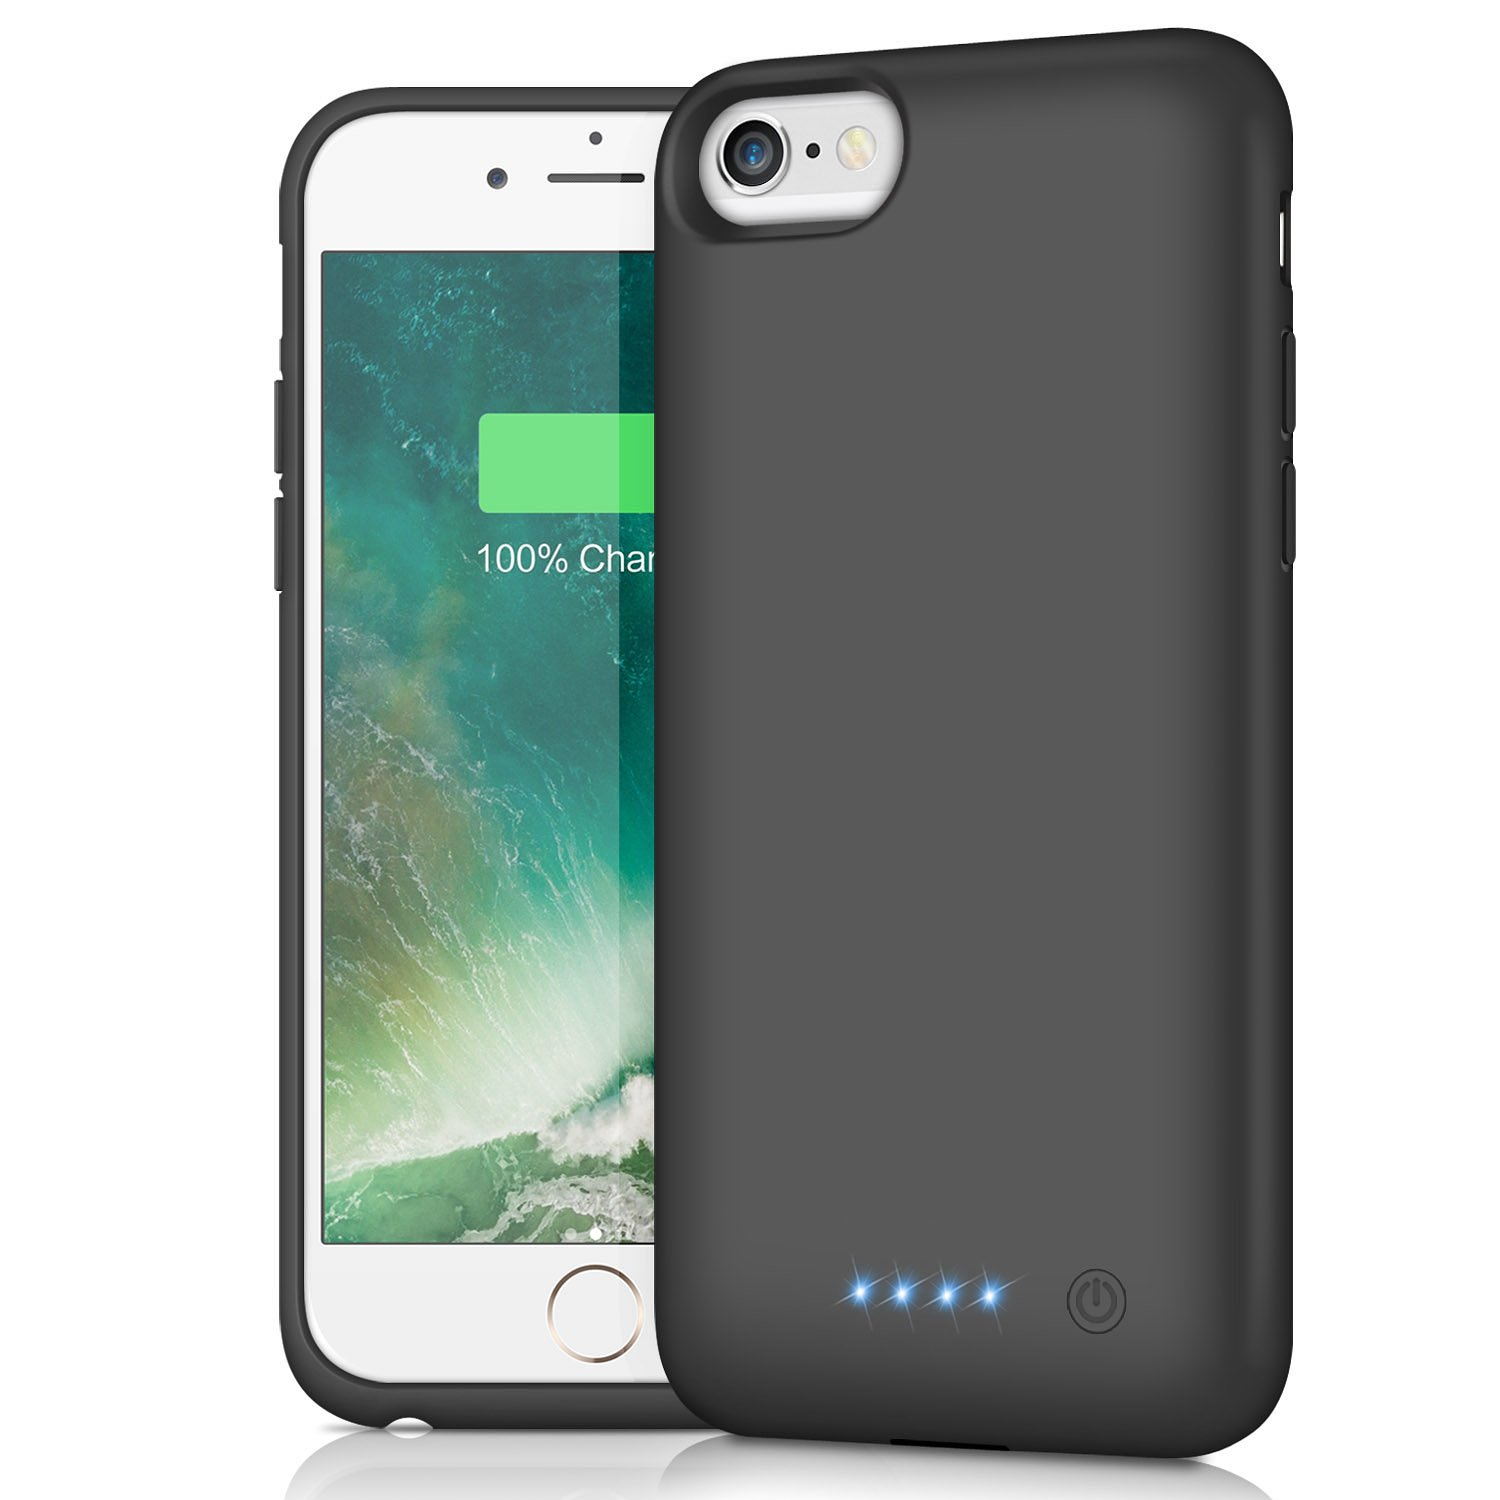 iPhone 6s/6 Battery Case 6000mAh, HETP Portable Rechargeable Extended Battery Pack Charging Case for Apple iPhone 6 iPhone 6s Protective Backup Power Bank (4.7 inch)- Black